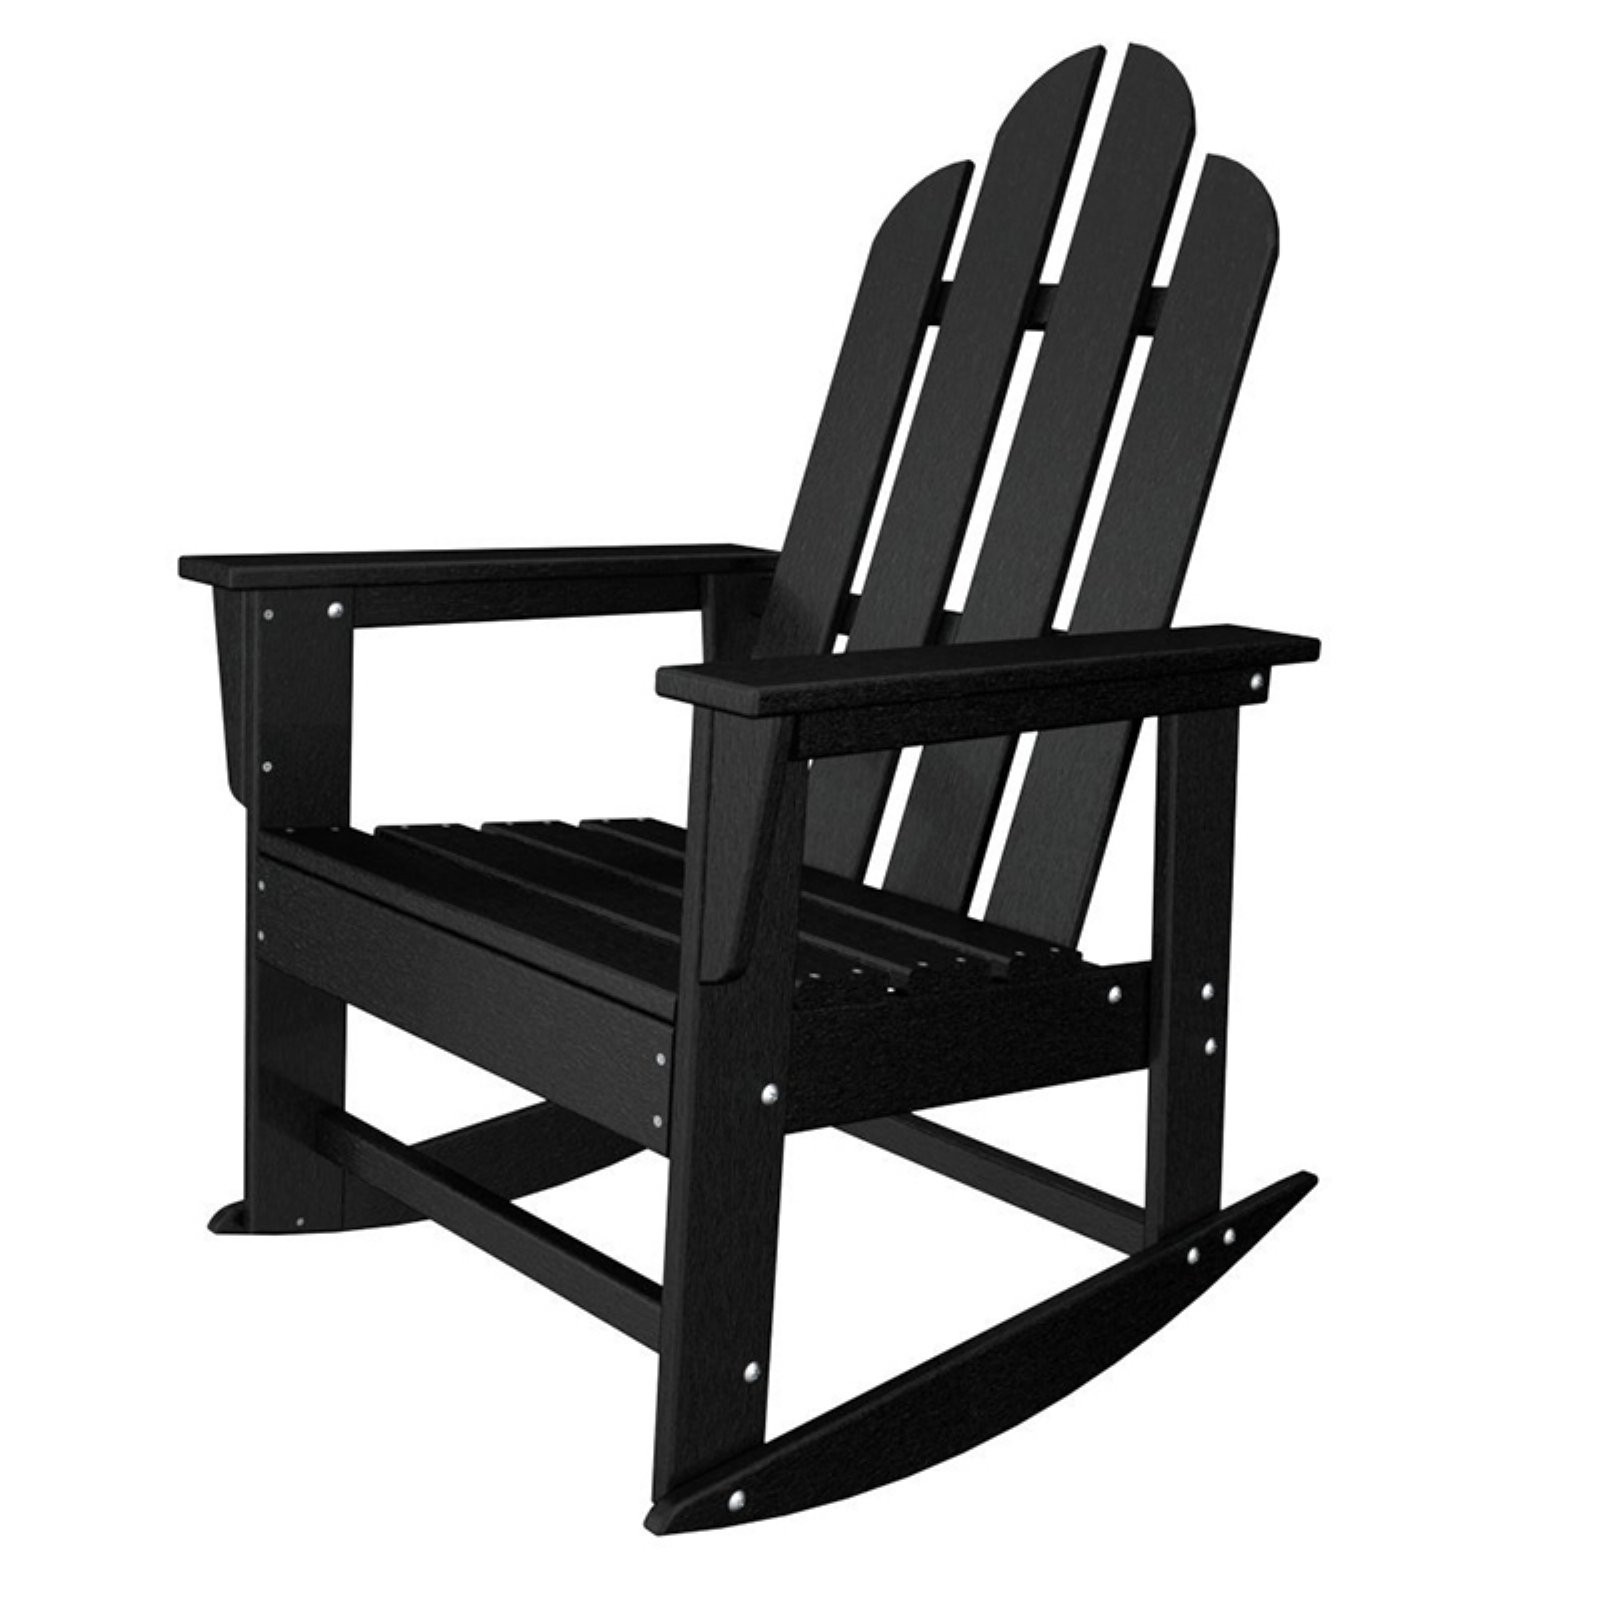 POLYWOOD® Long Island Recycled Plastic Adirondack Rocking Chair